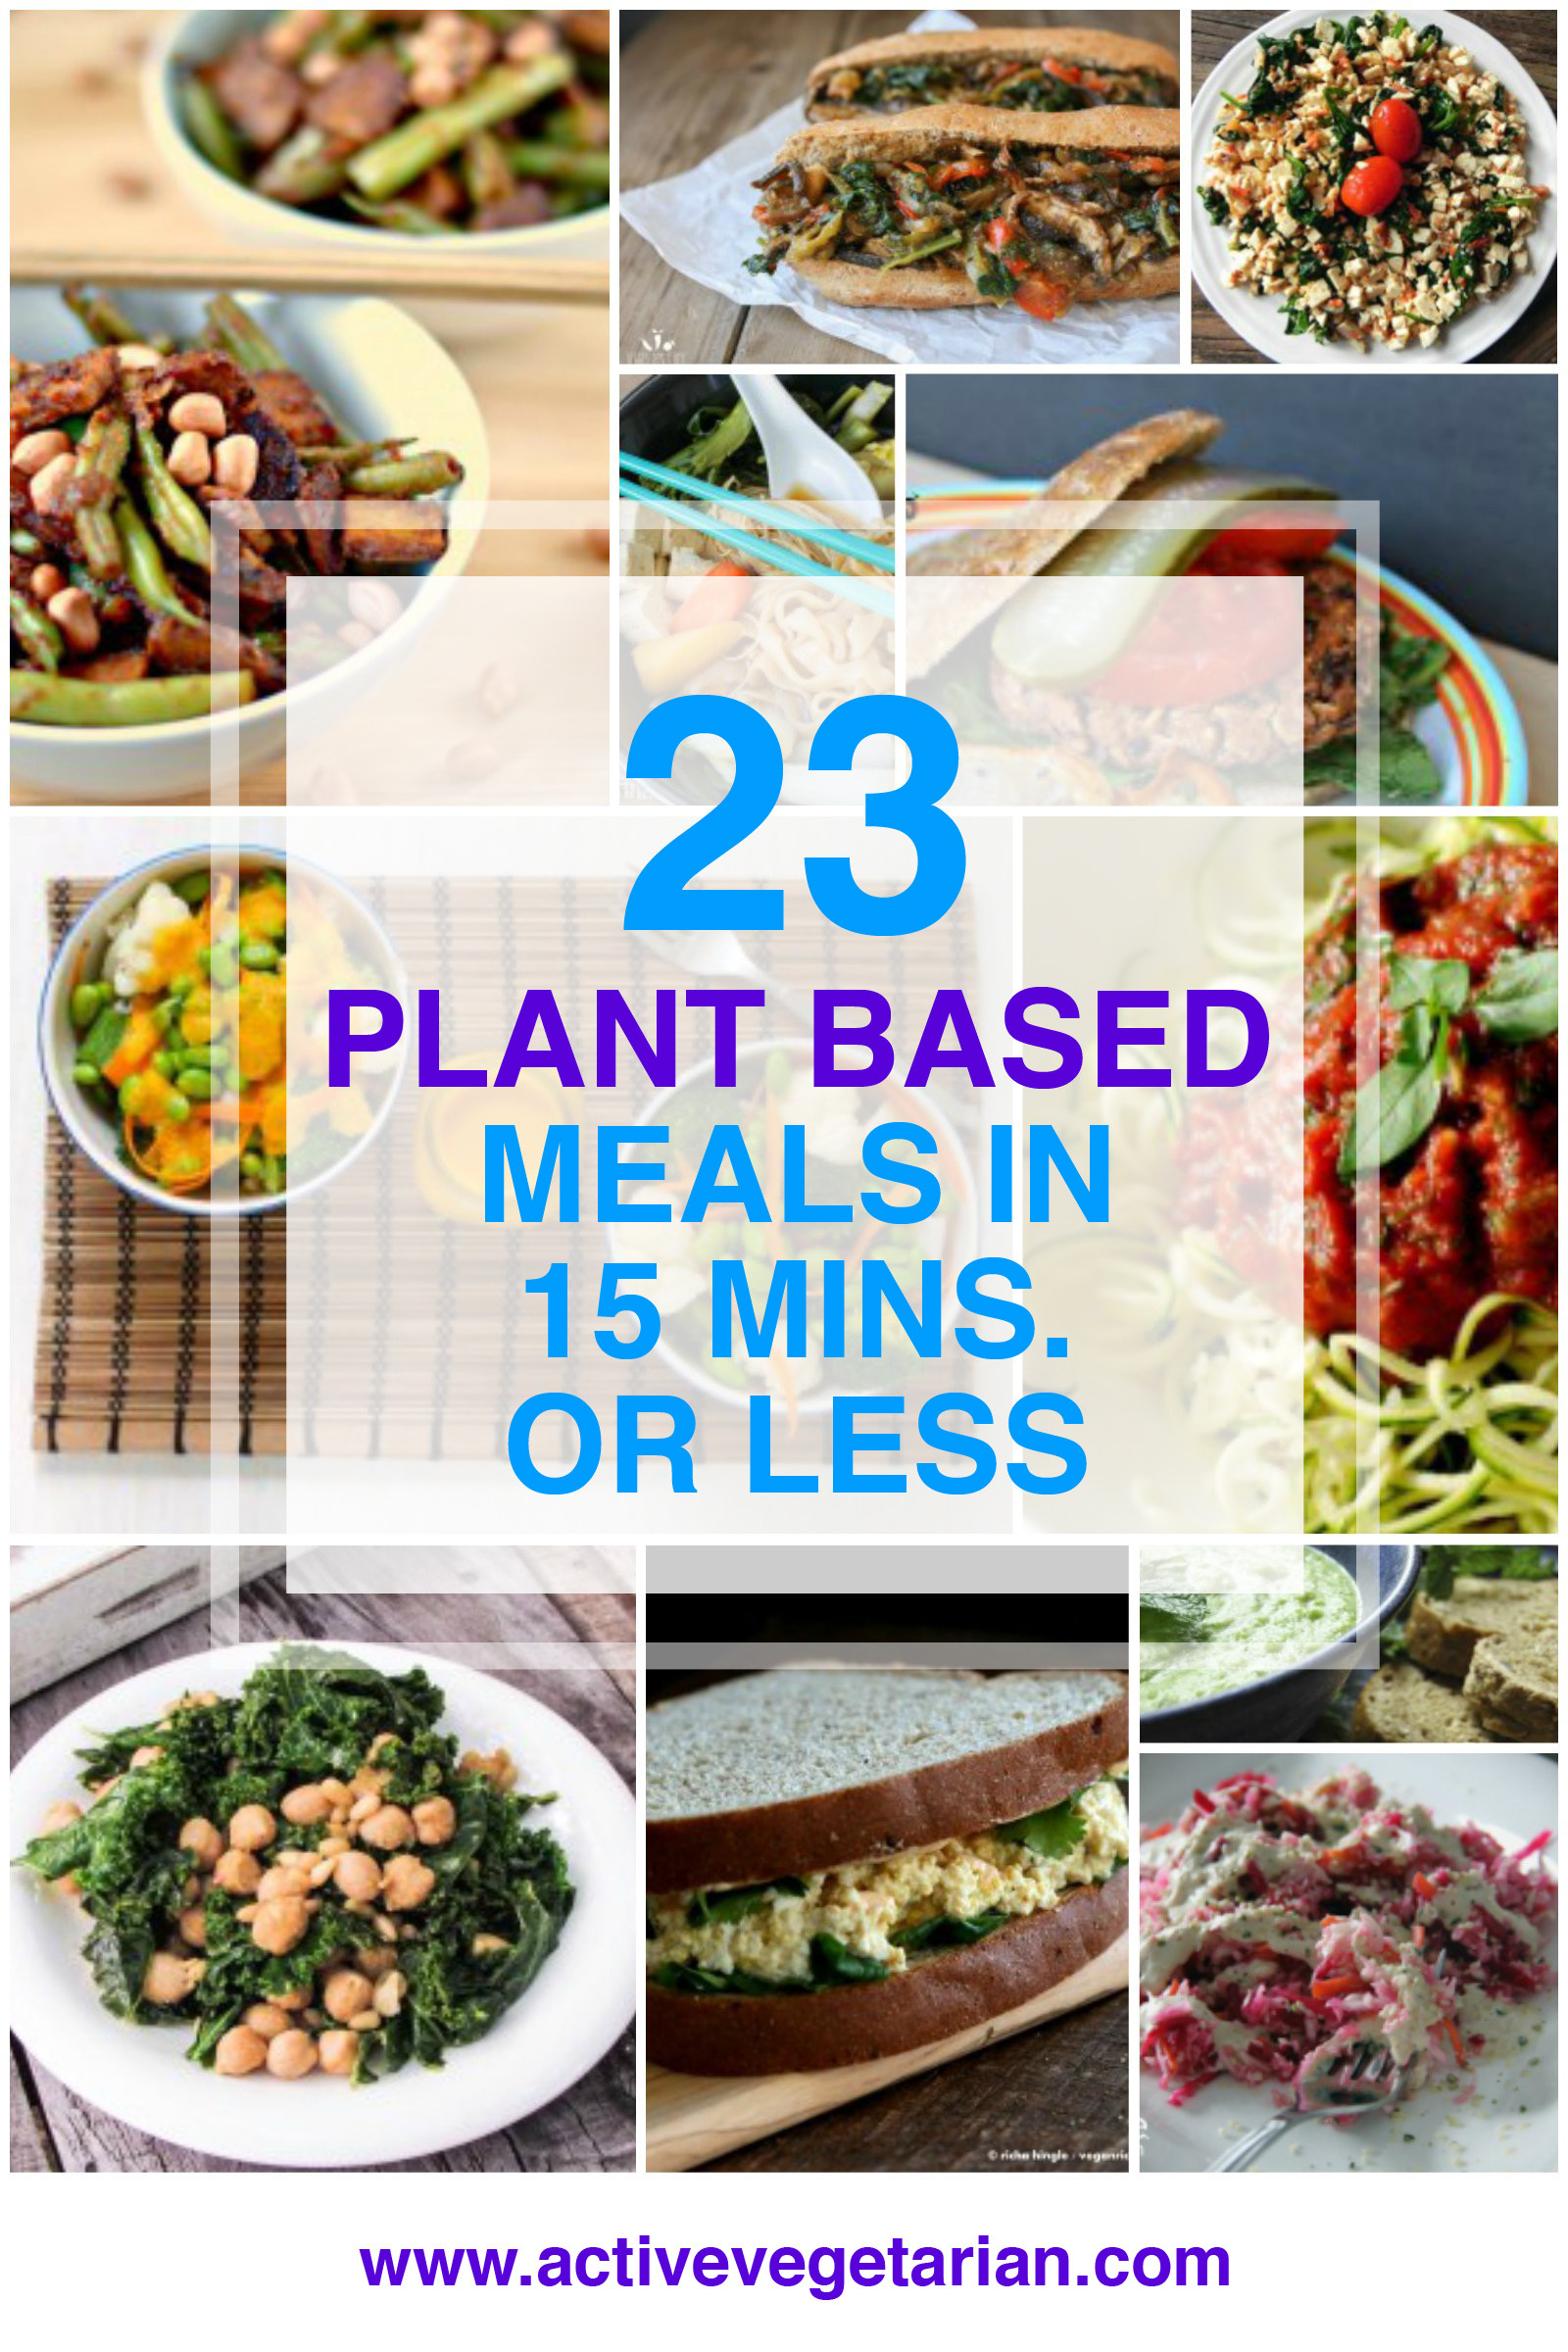 Plant Based Diet Meal Plan Recipes  23 Plant Based Meals in 15 Minutes or Less